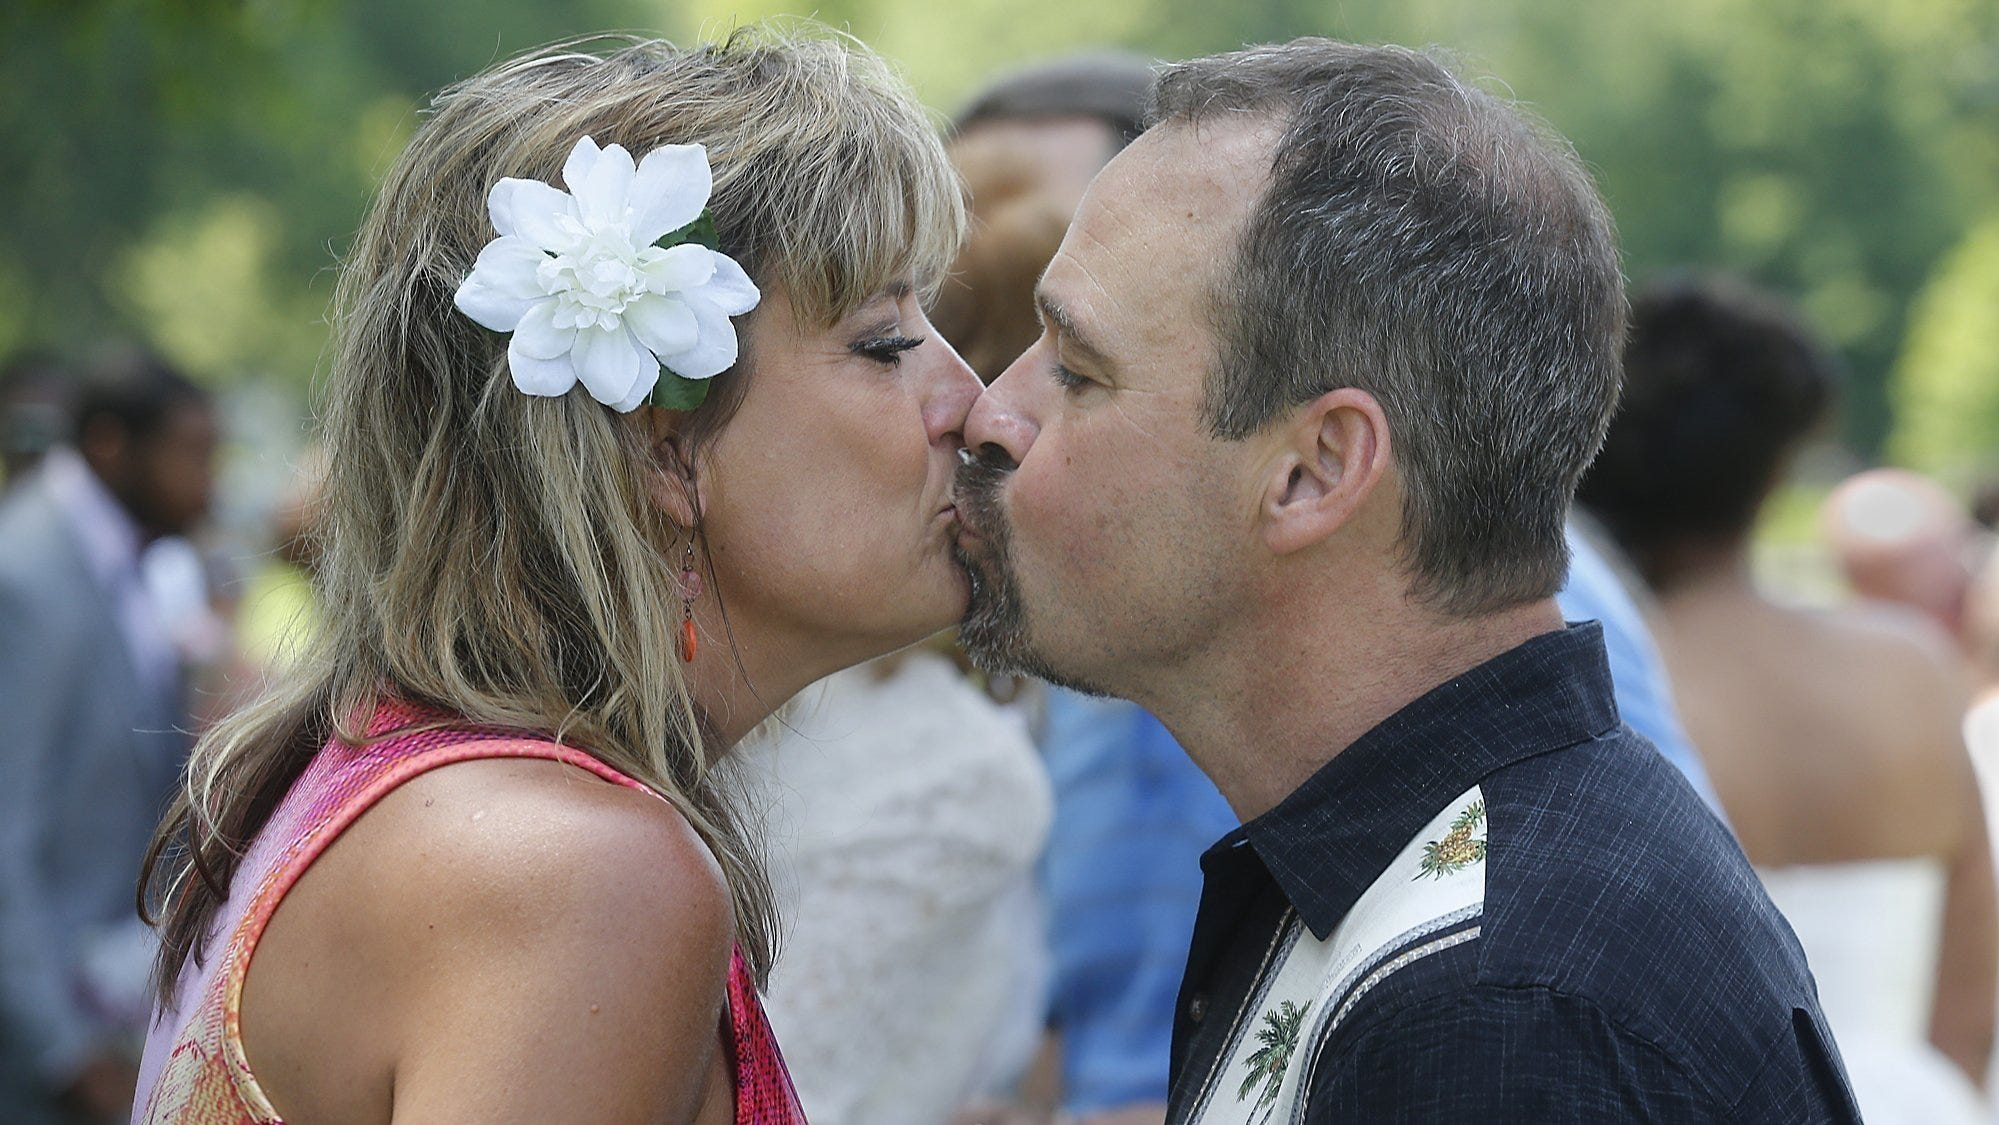 Shannon and Tom Hasenstab of Cuyahoga Falls kiss after Summit County Probate Court Judge Elinore Marsh Stormer renewed their wedding vows with 34 other couples in June 2019. Many couples postponed weddings or drastically cut the guest lists in 2020 because of the pandemic. [Phil Masturzo/Beacon Journal/Ohio.com]